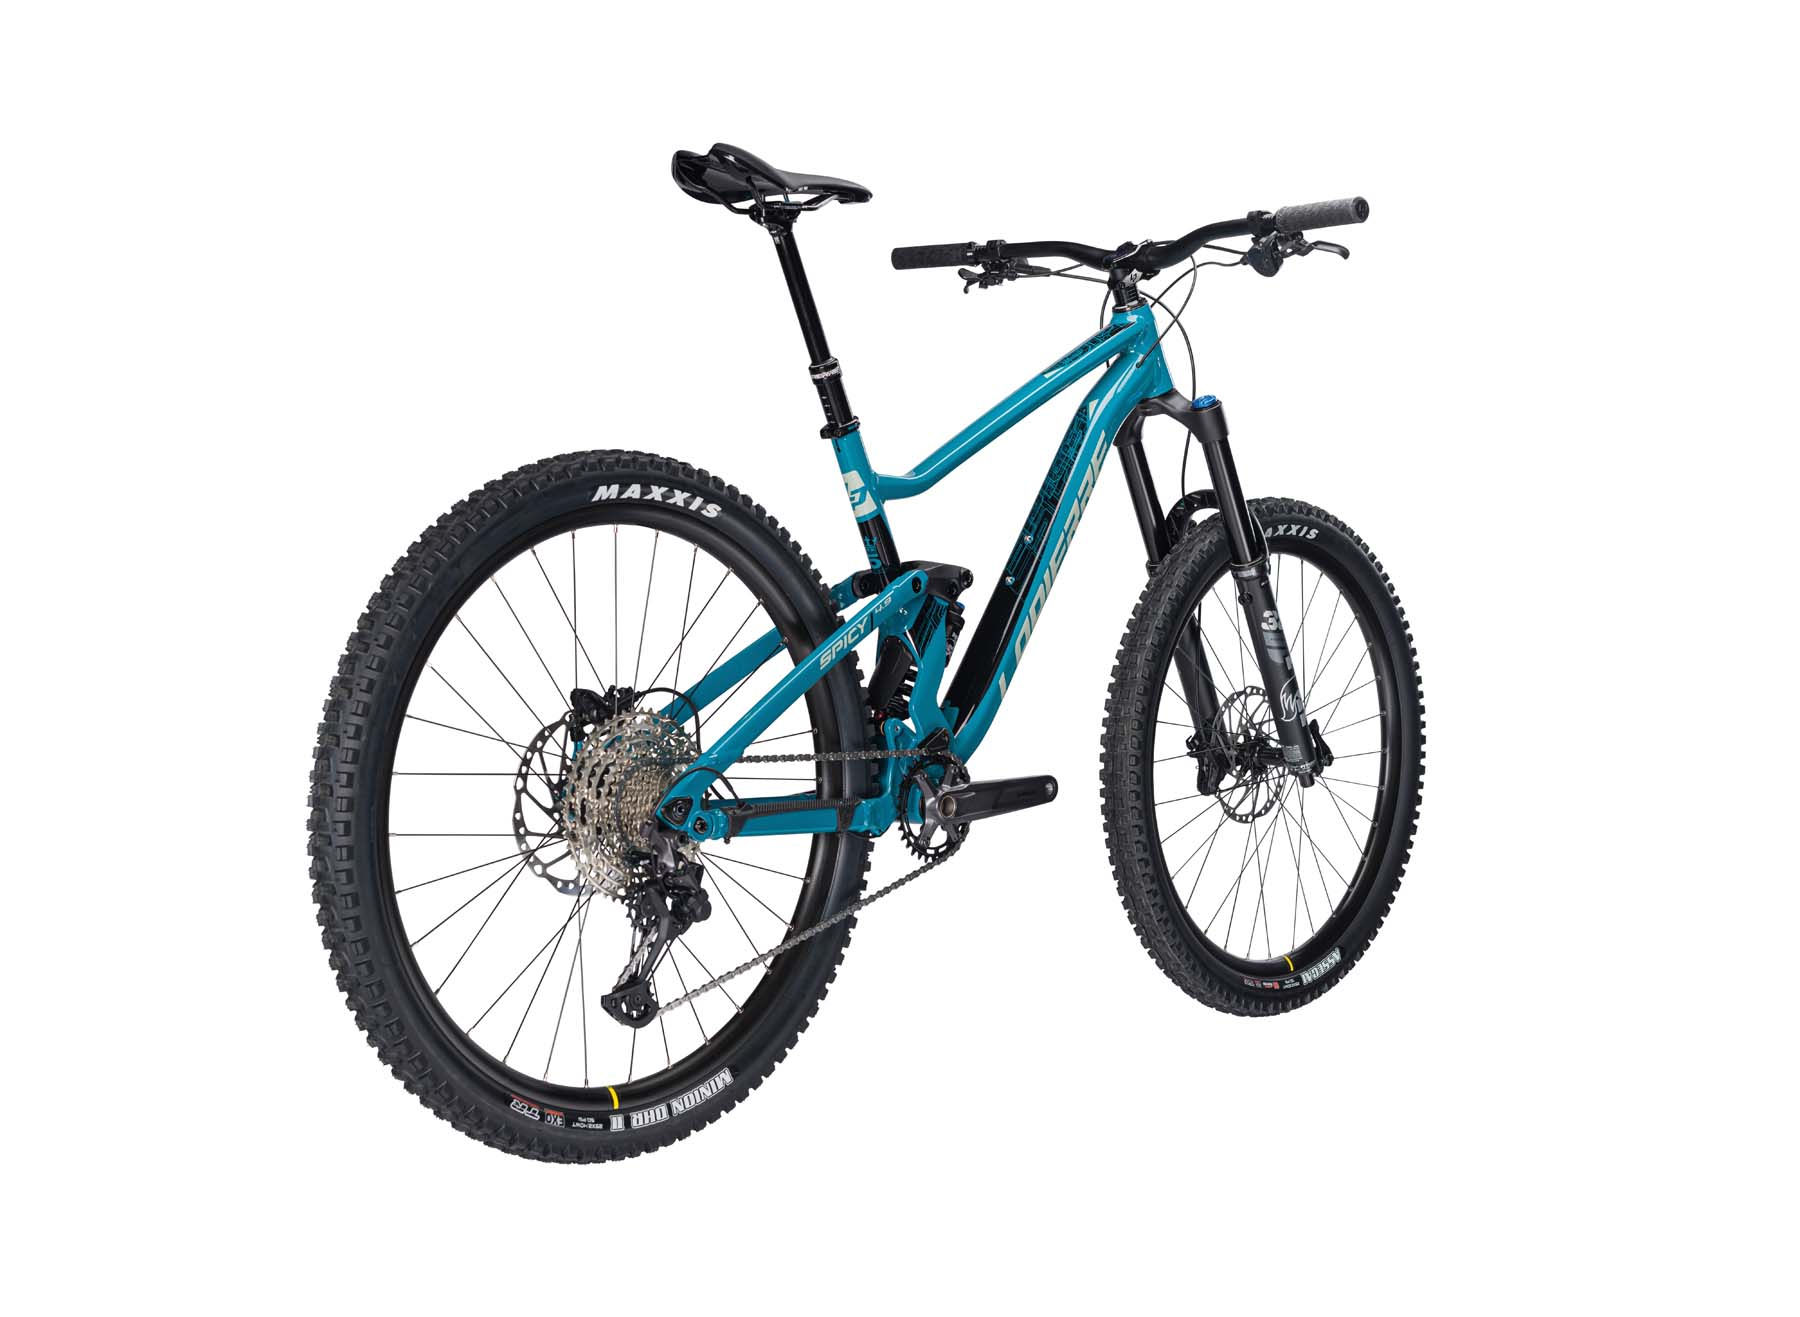 Lapierre Spicy 4.9 2021 VTT Enduro 2